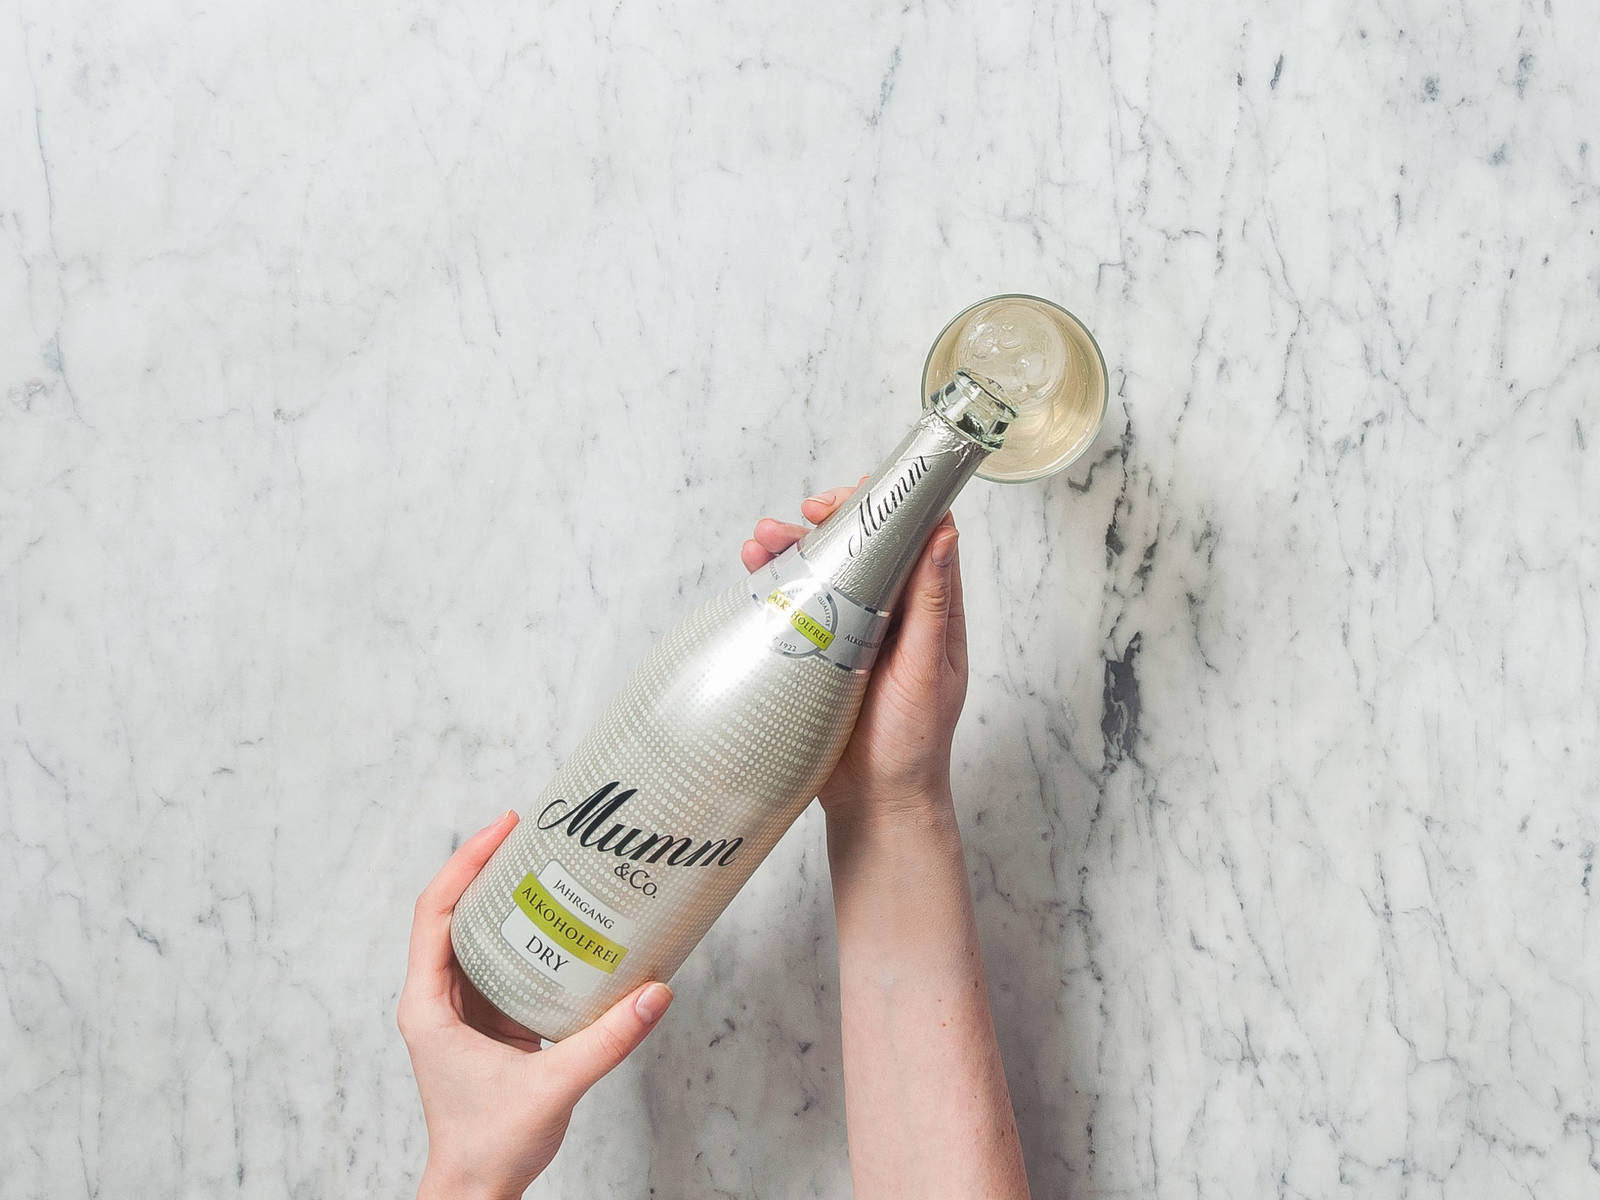 Fill glass with sparkling water and non-alcoholic sparkling wine. Garnish with fresh rosemary and lemon peel. Cheers!